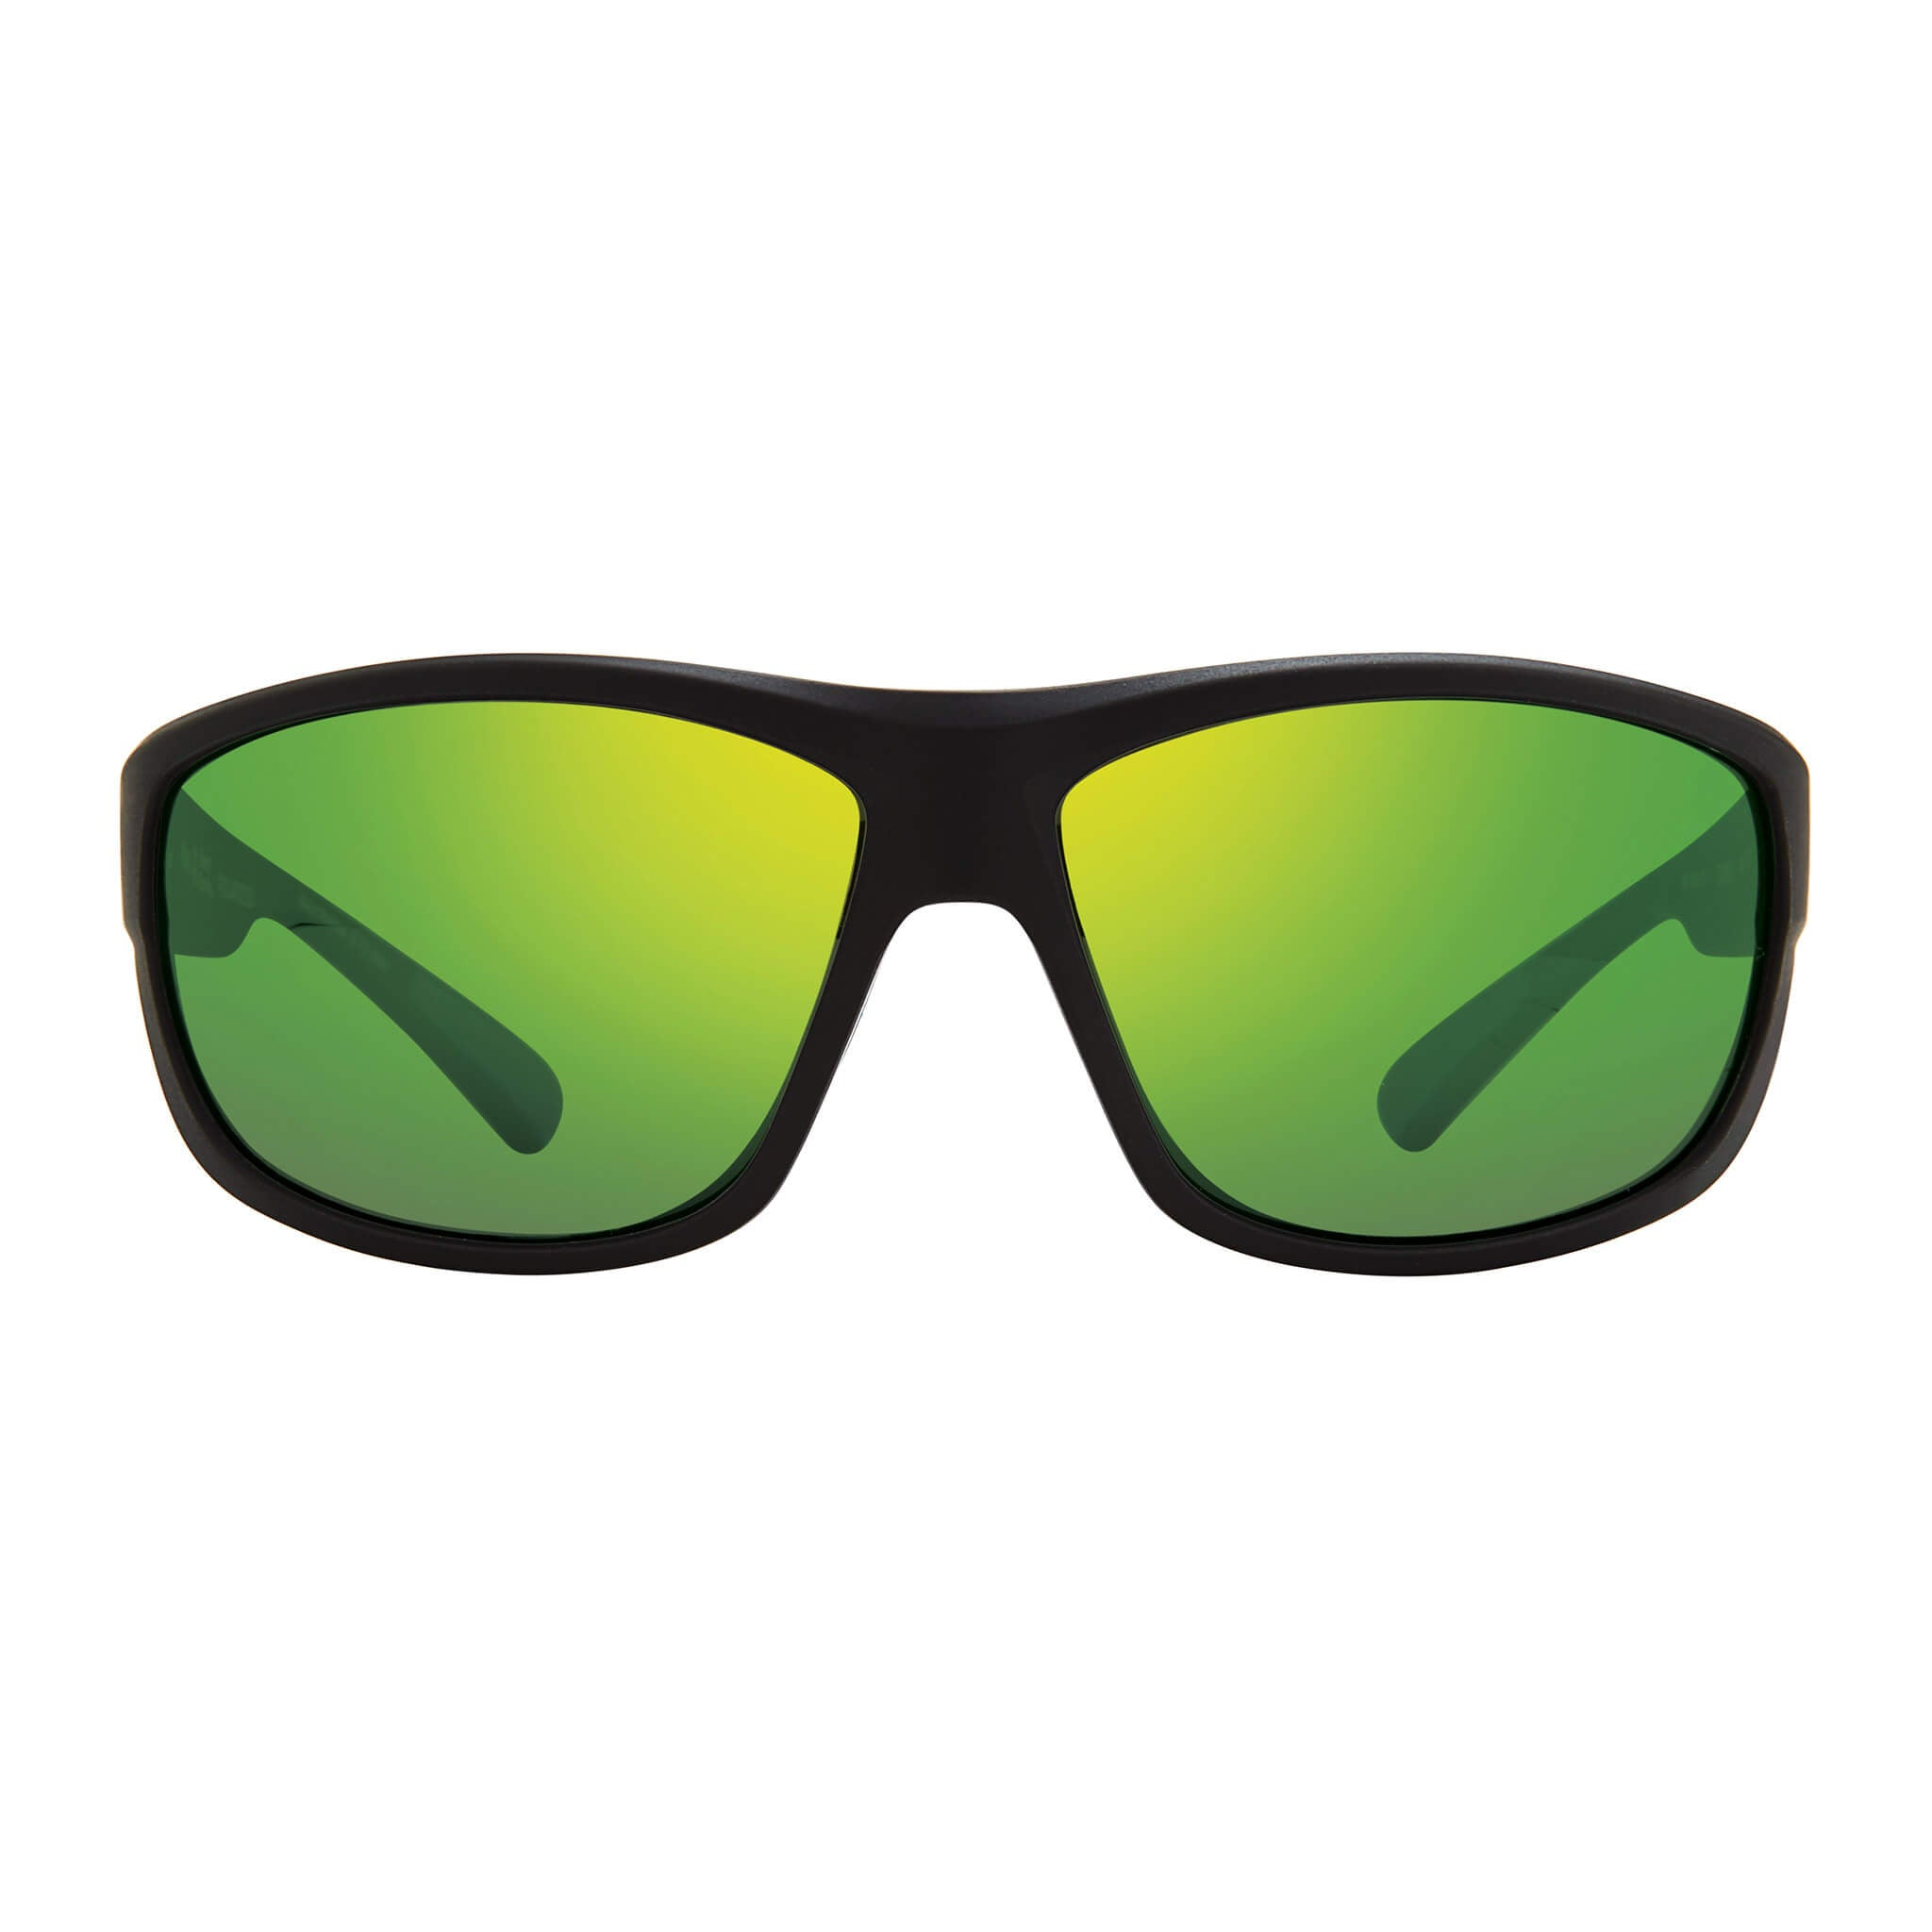 Matte black + green water lens:Front view of Bear Grylls Revo Caper Sunglasses